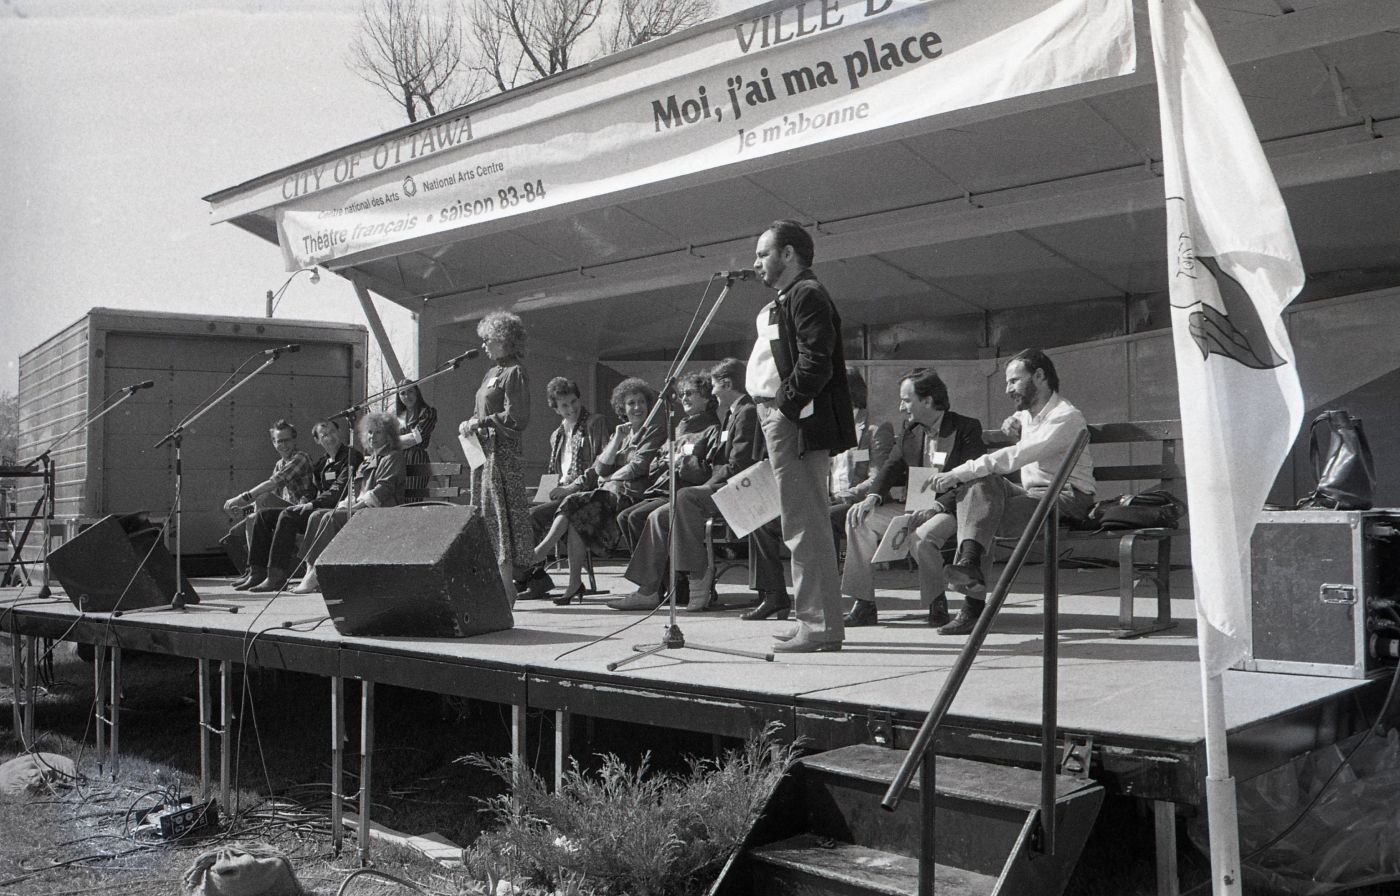 """Black and white photograph of a middle-aged man and woman standing at microphones on an outdoor stage. Behind them, a dozen people sitting on benches. On a banner: """"Centre national des Arts–National Arts Centre; Théâtre français saison 83-84; Moi, j'ai ma place; Je m'abonne."""""""